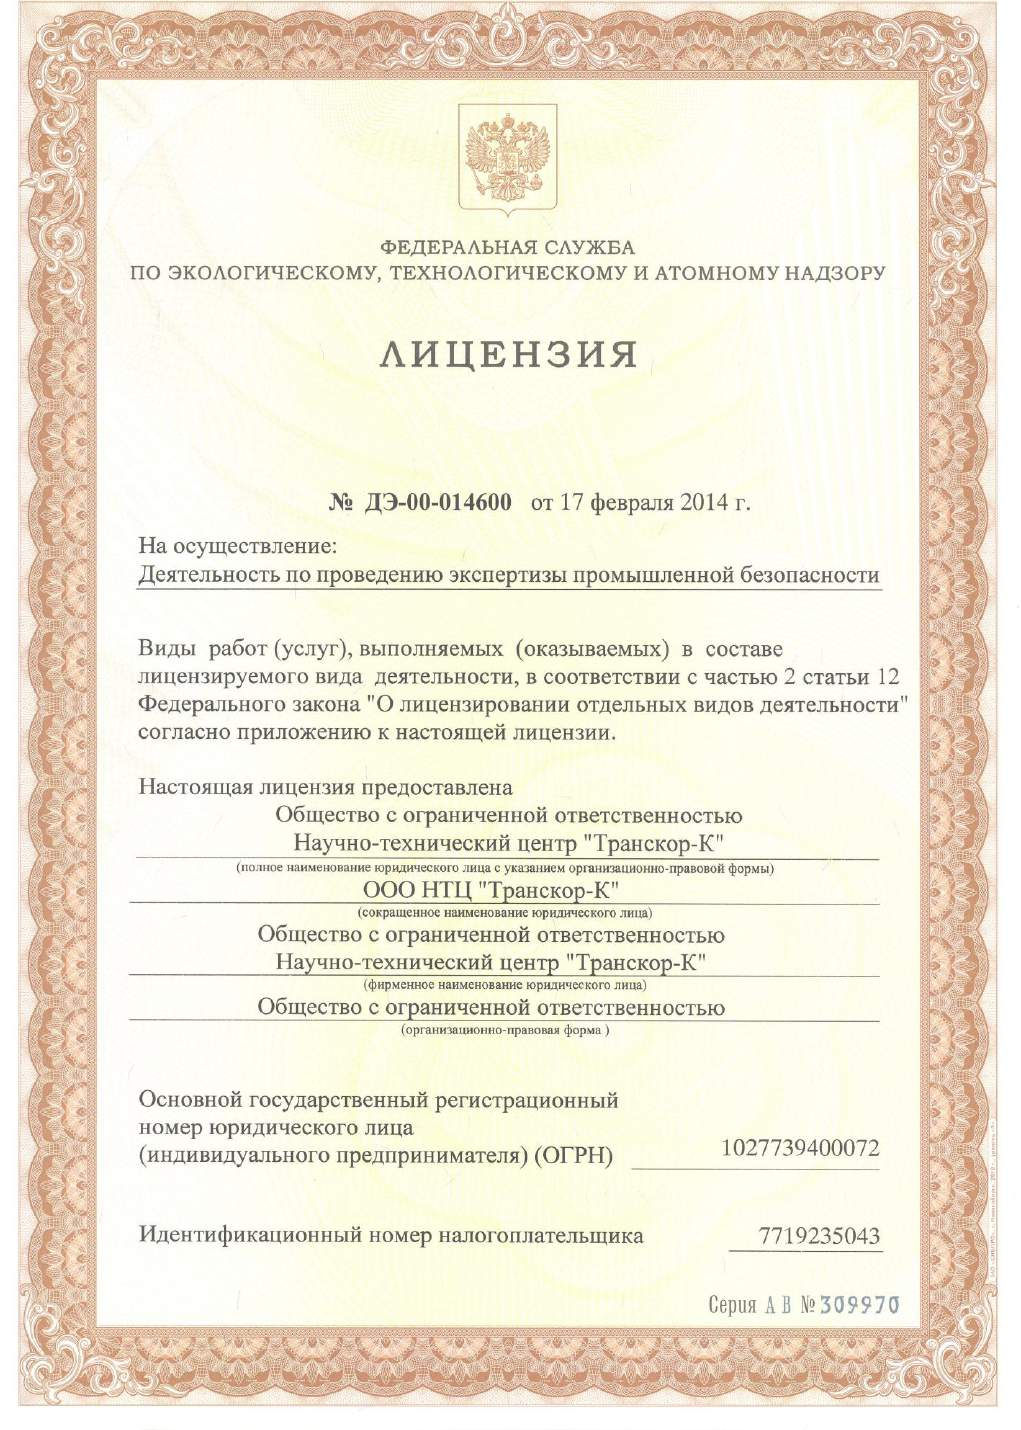 License Transkor-K.